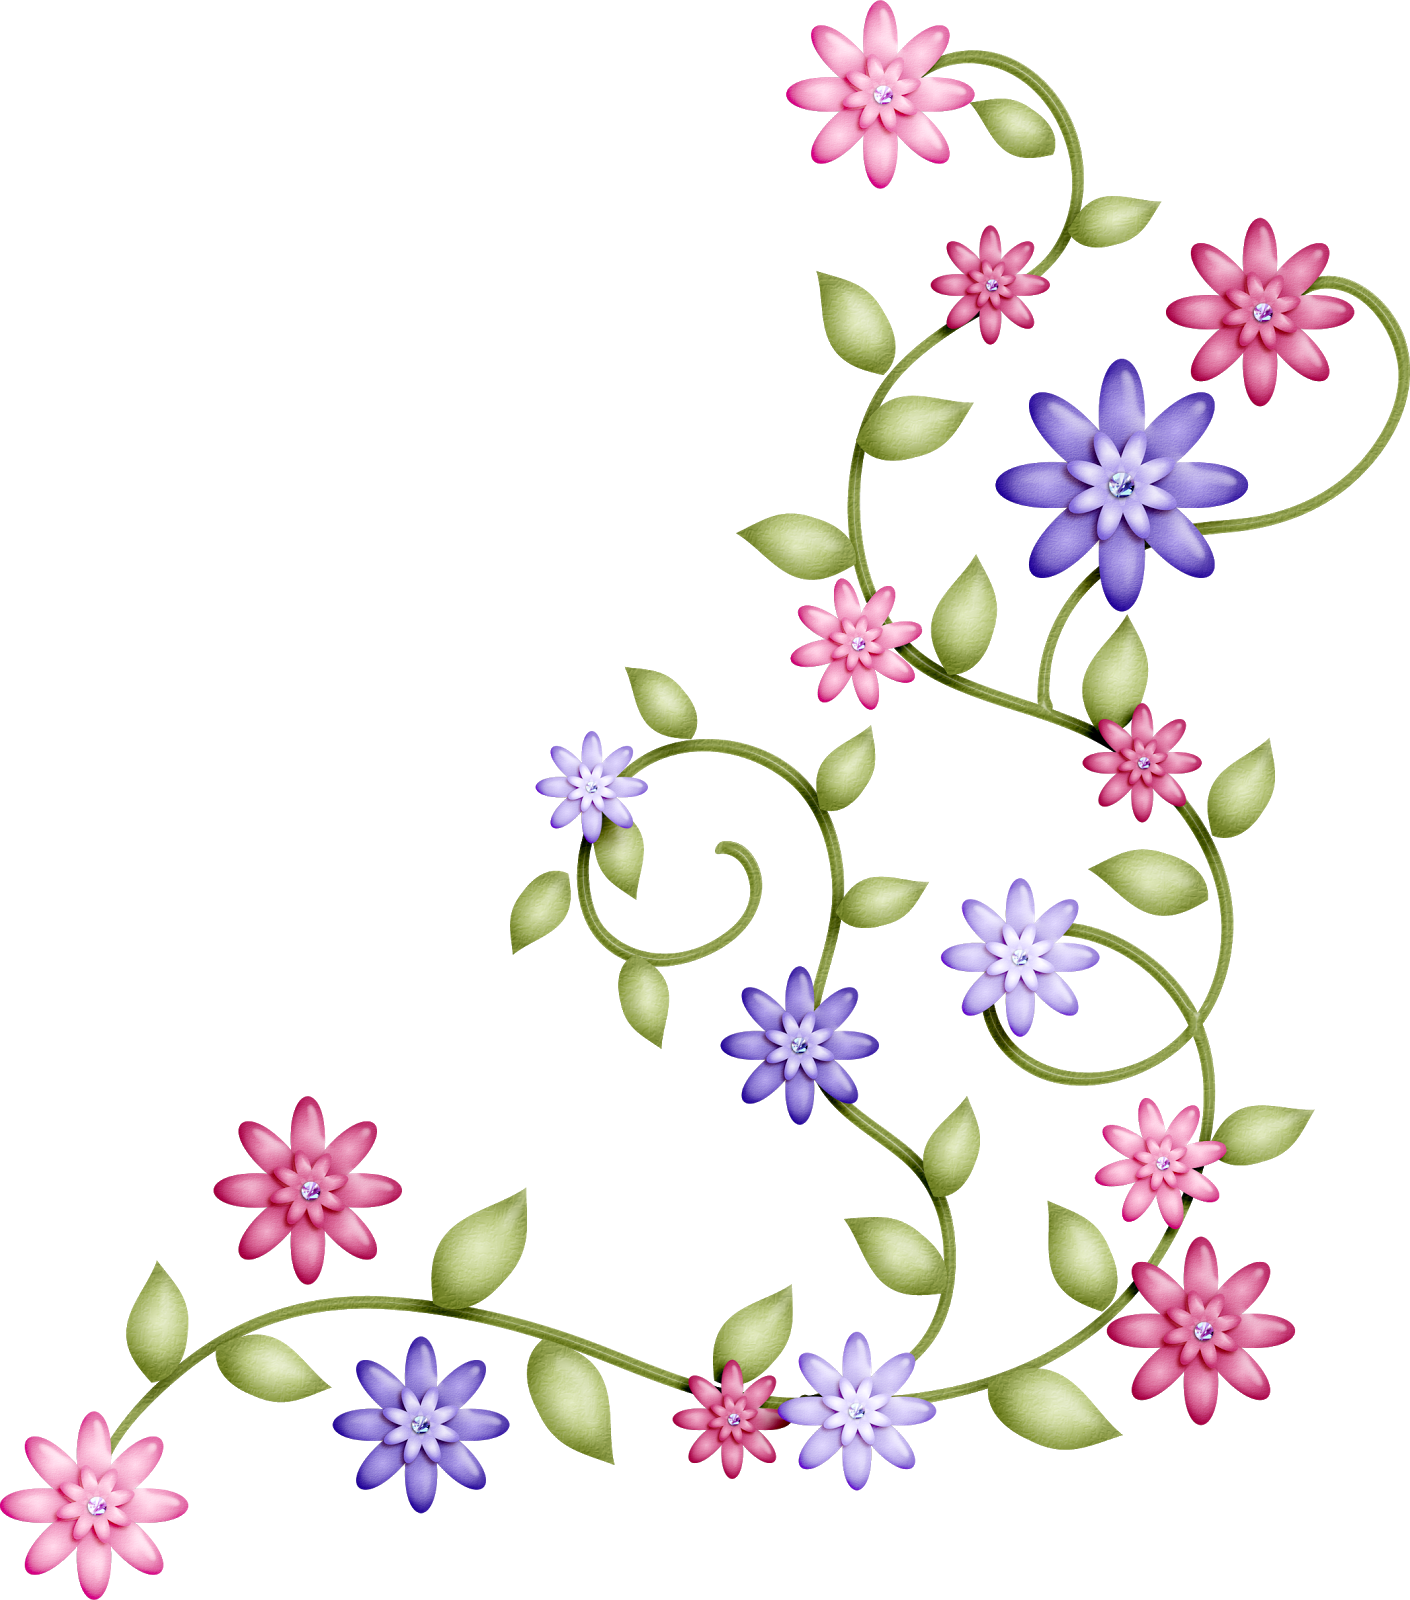 Clip art flores google search para imprimir for Adornos para paginas